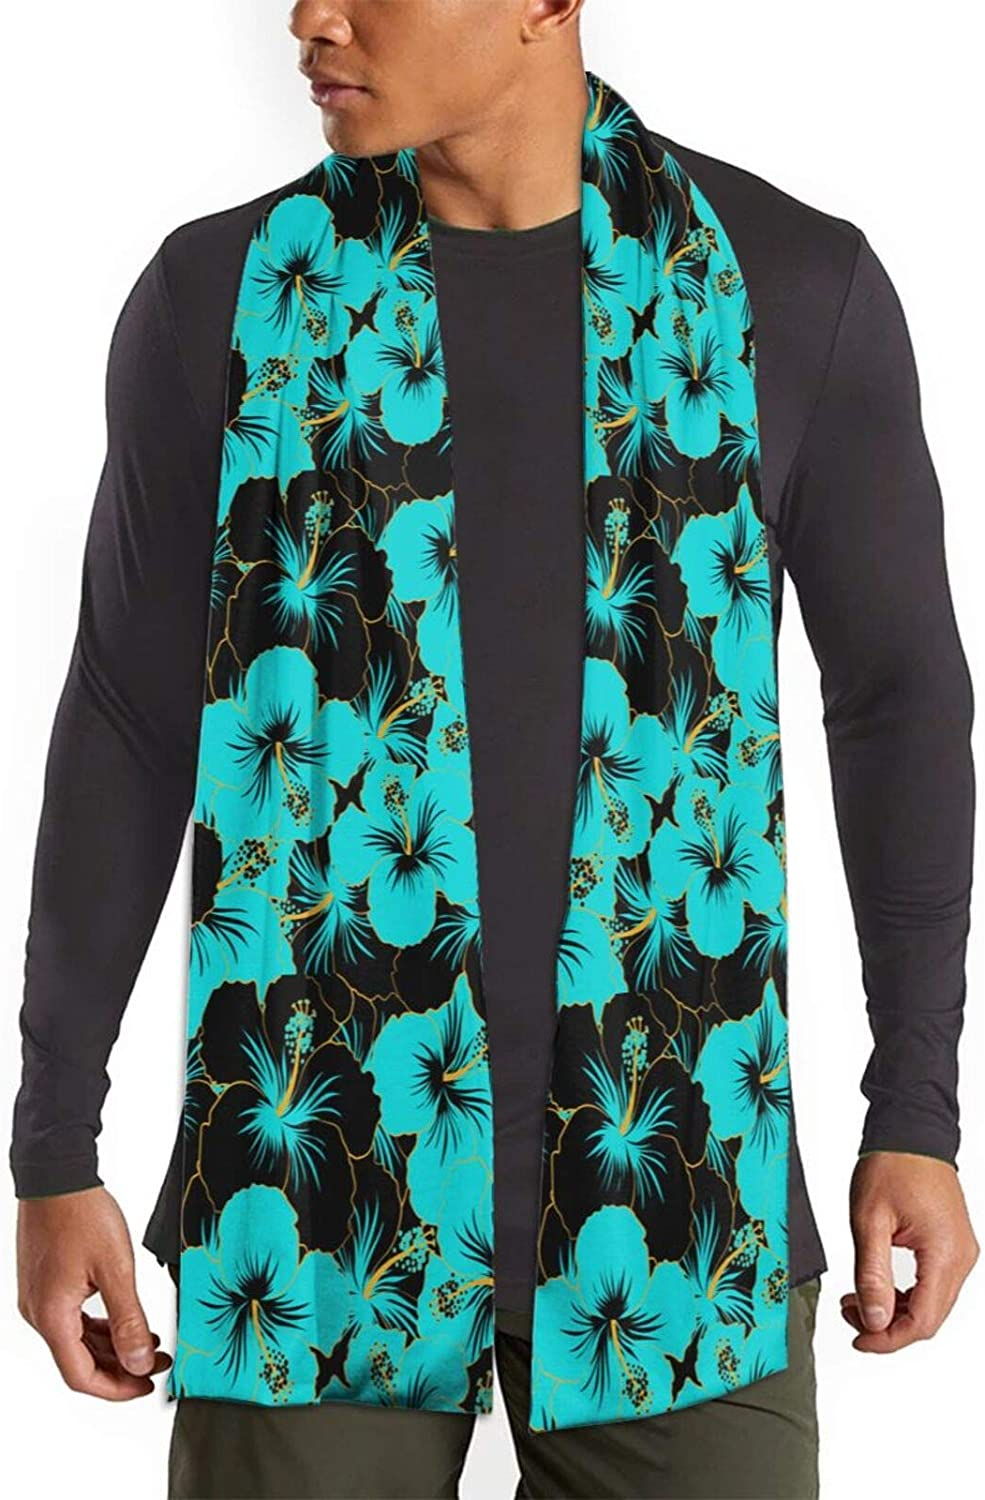 Womens Winter Scarf Tropical Flowers Blue Hibiscus Wraps Warm Pashmina Shawls Gift Reversible Soft For Girls